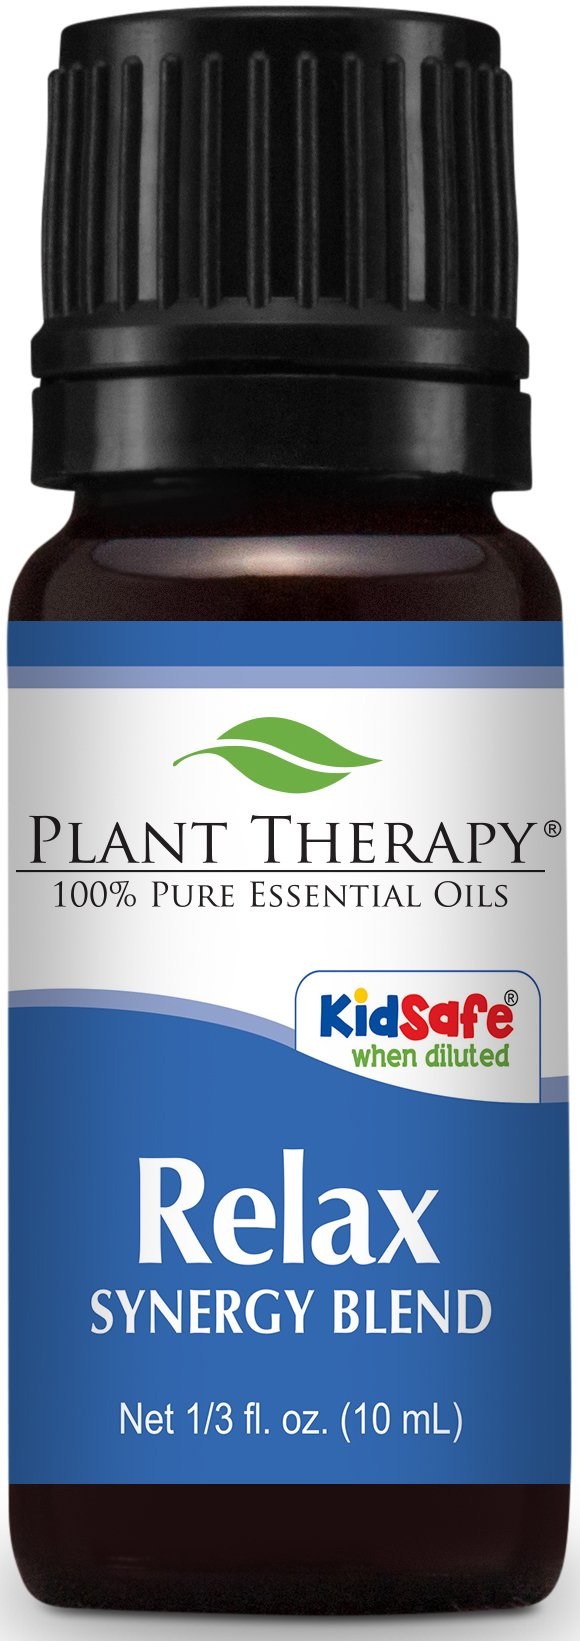 Plant Therapy Relax Synergy Essential Oil 10 mL (1/3 oz) 100% Pure, Undiluted, Therapeutic Grade